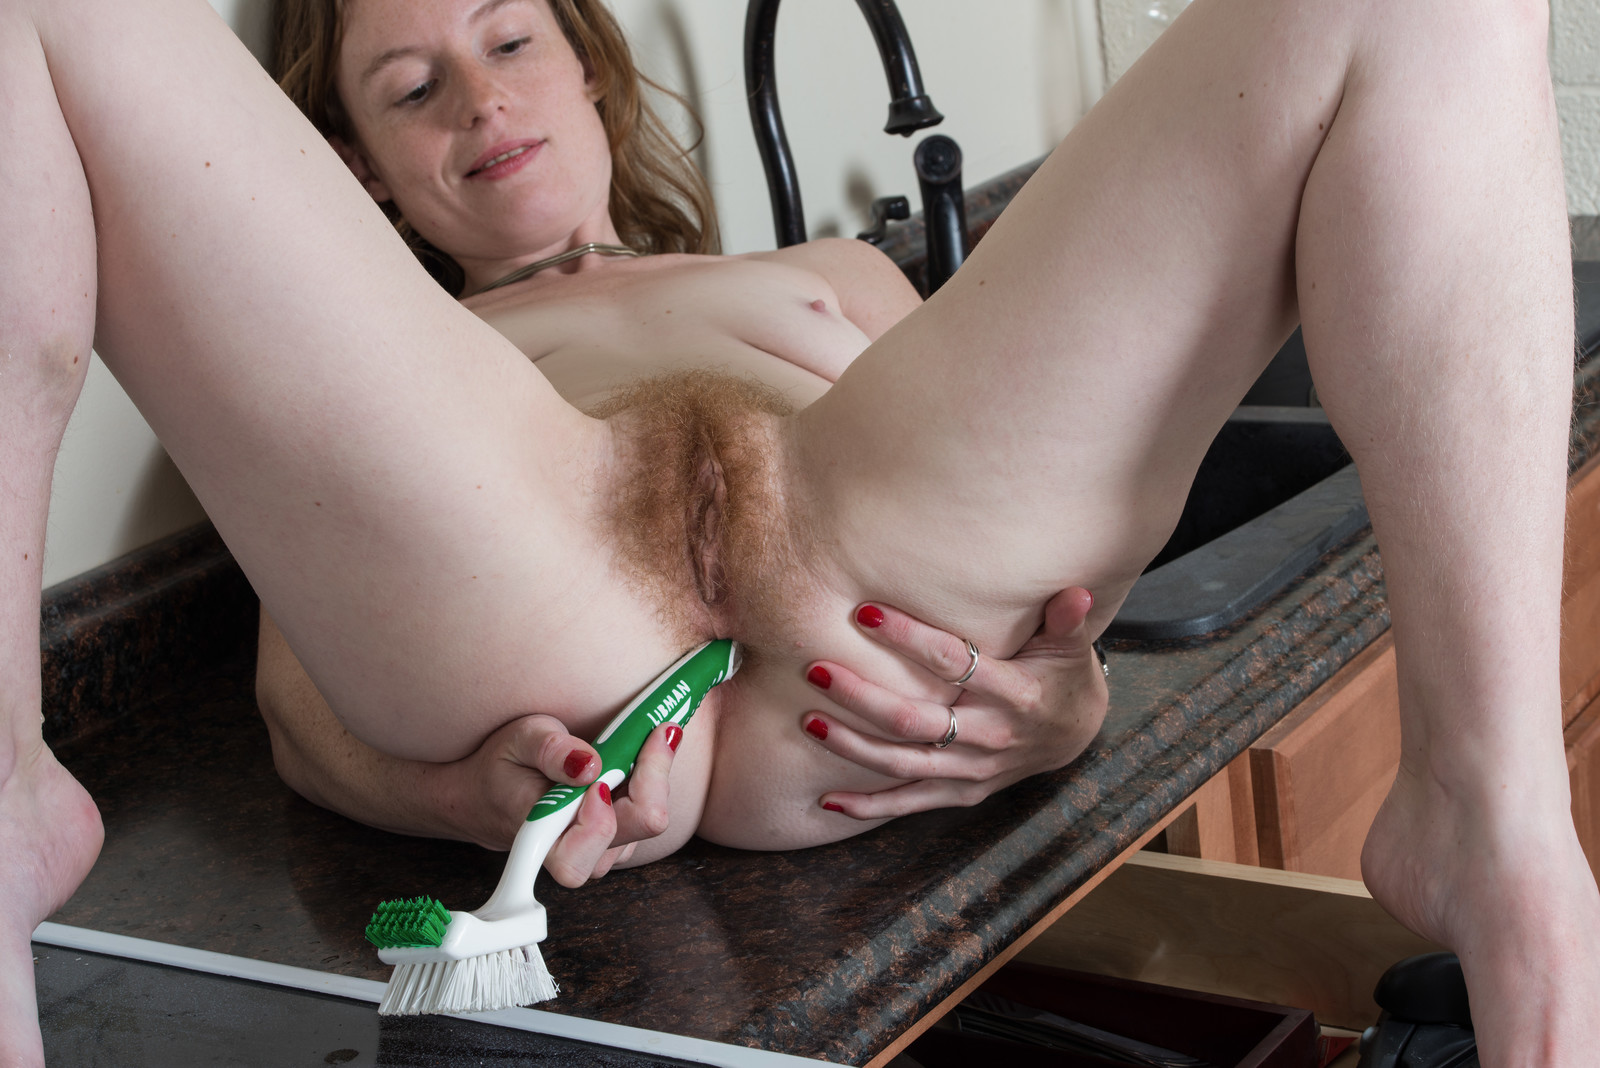 Clippers cock hair pubic shave